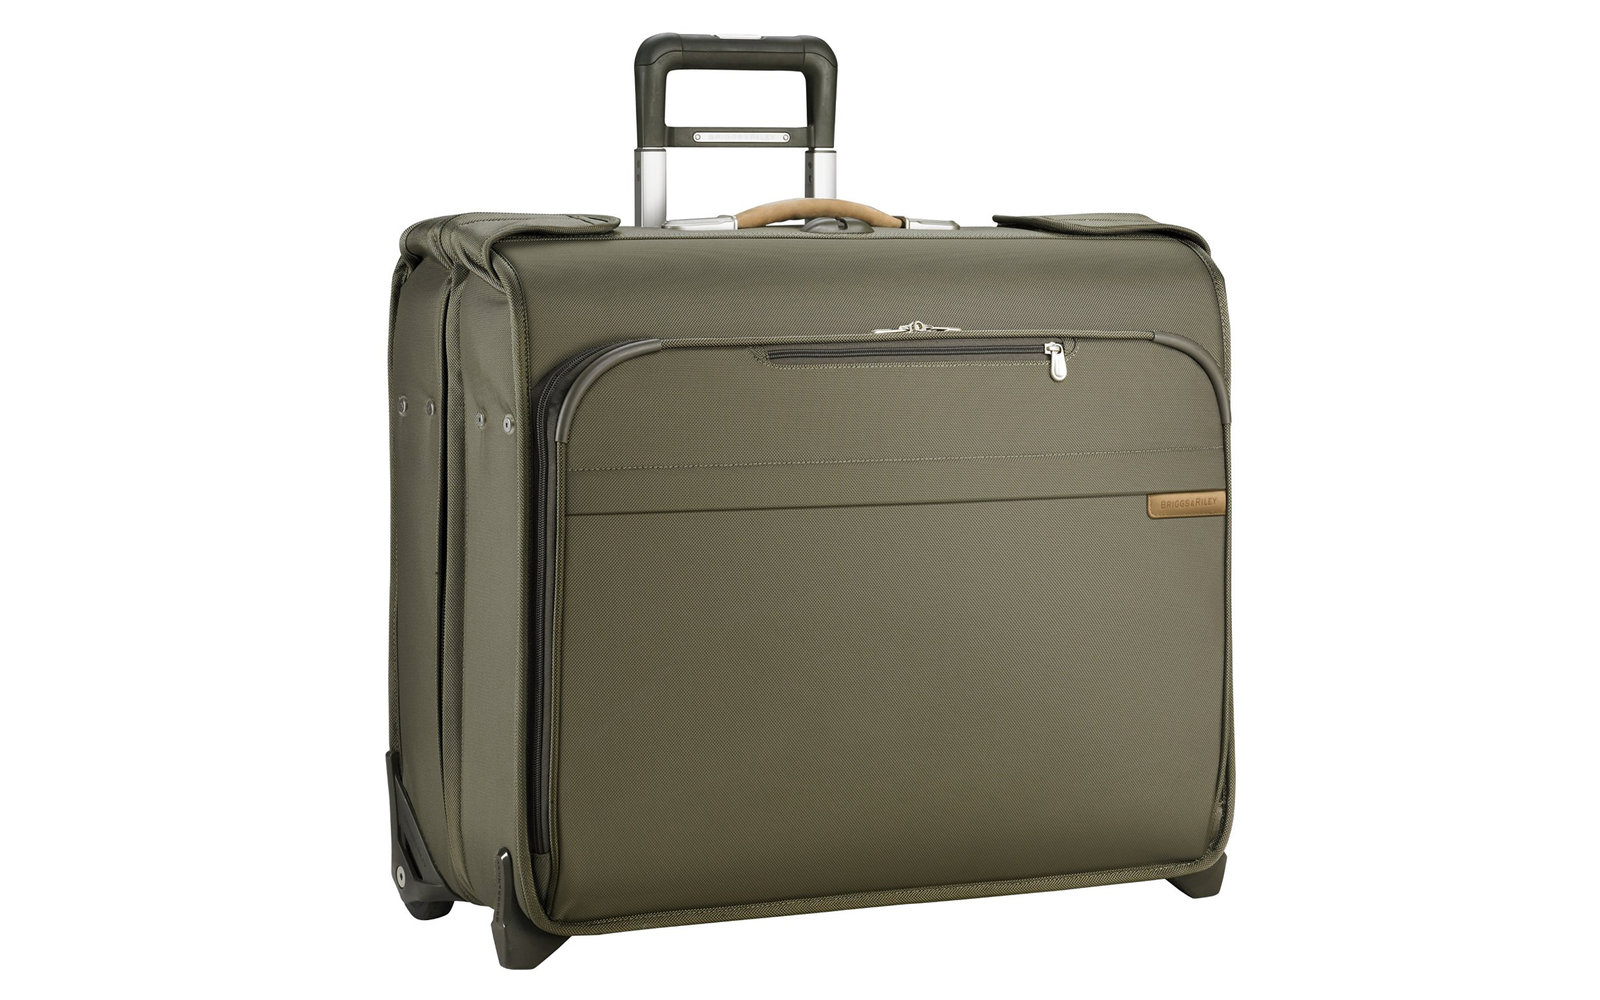 Best Carry-On Luggage for Business Travel | Travel + Leisure